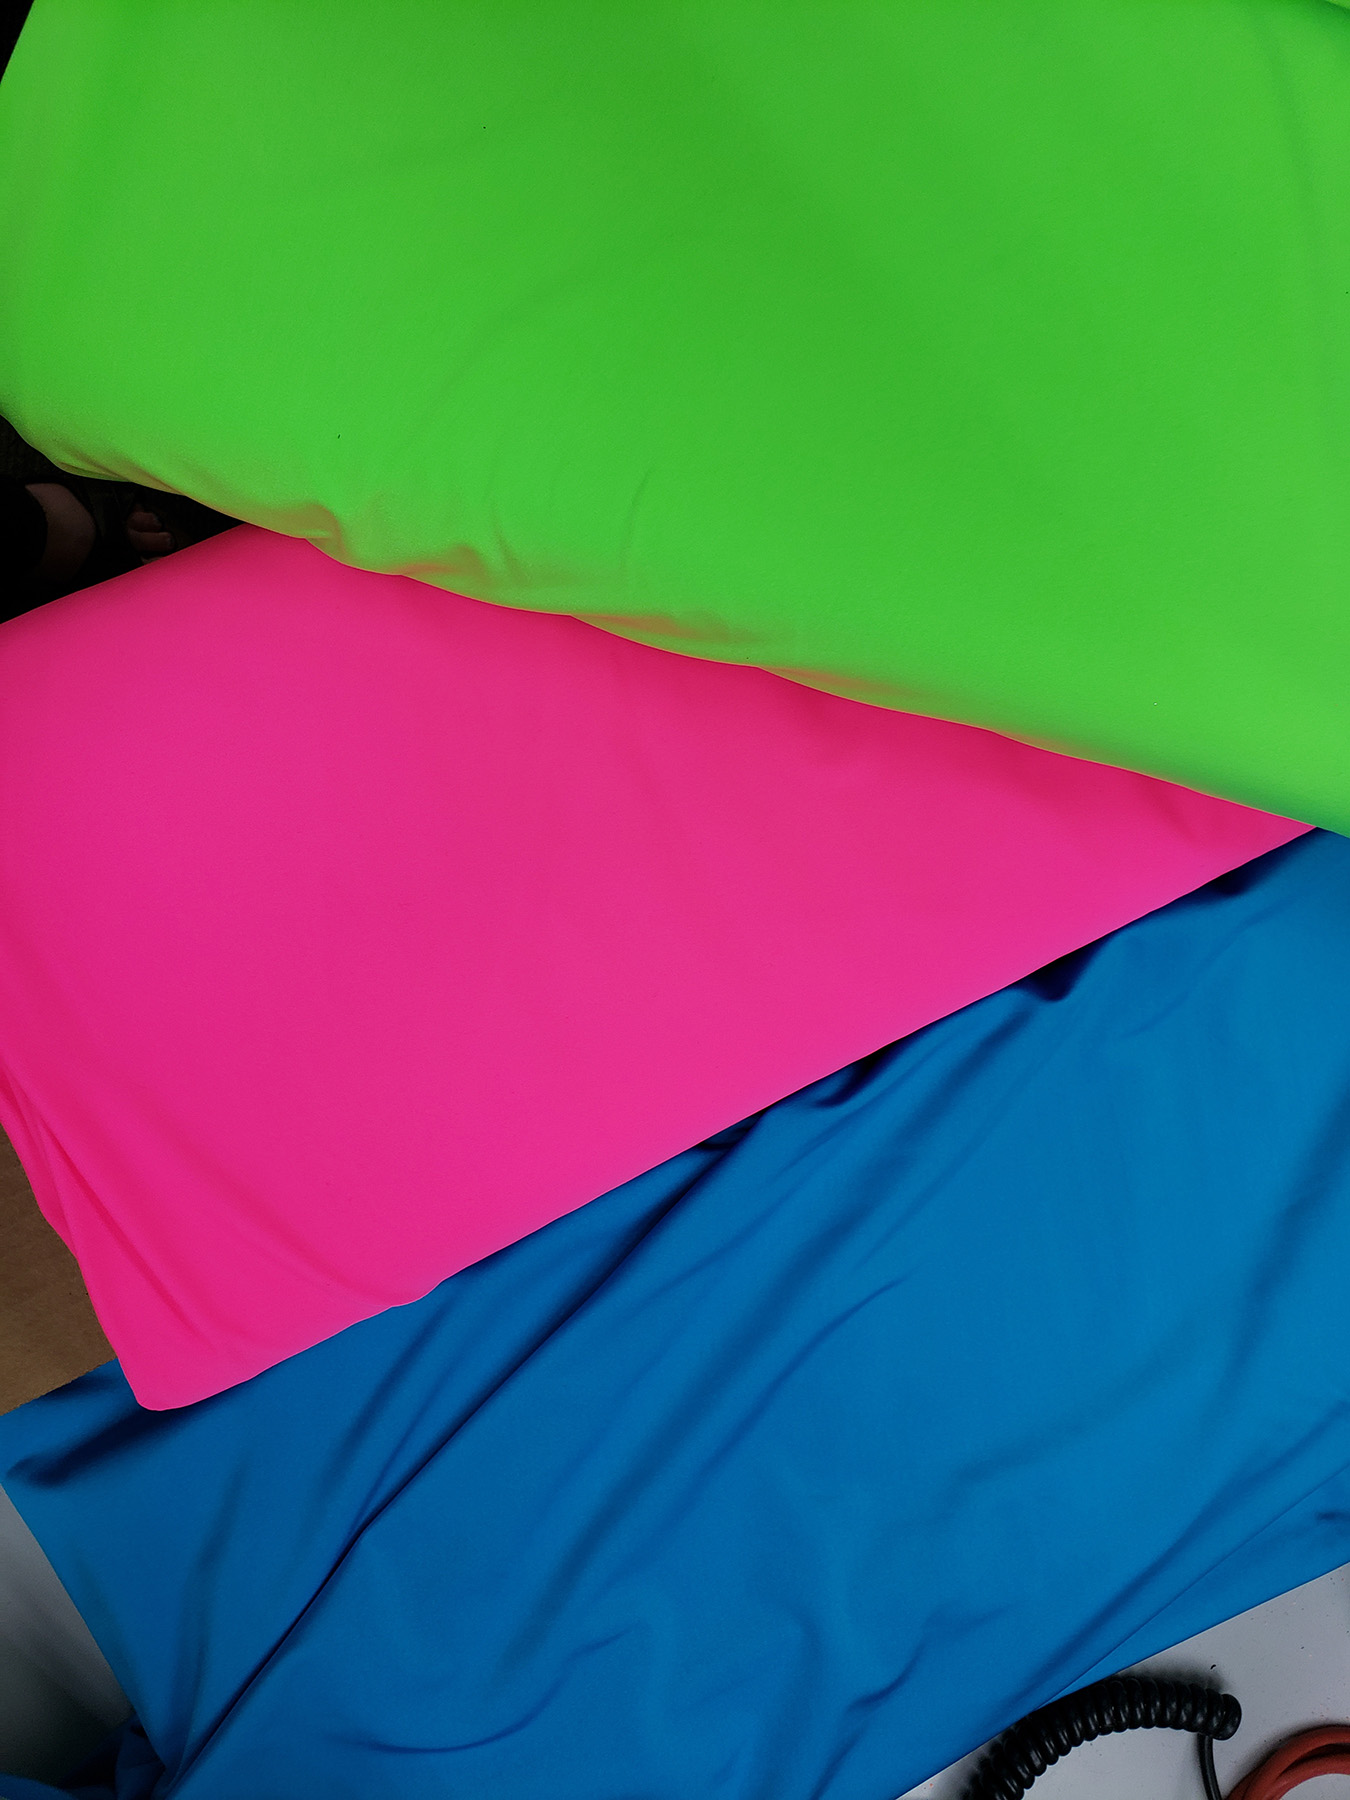 Stacked bolts of fabric in lime green, hot pink, and sky blue.